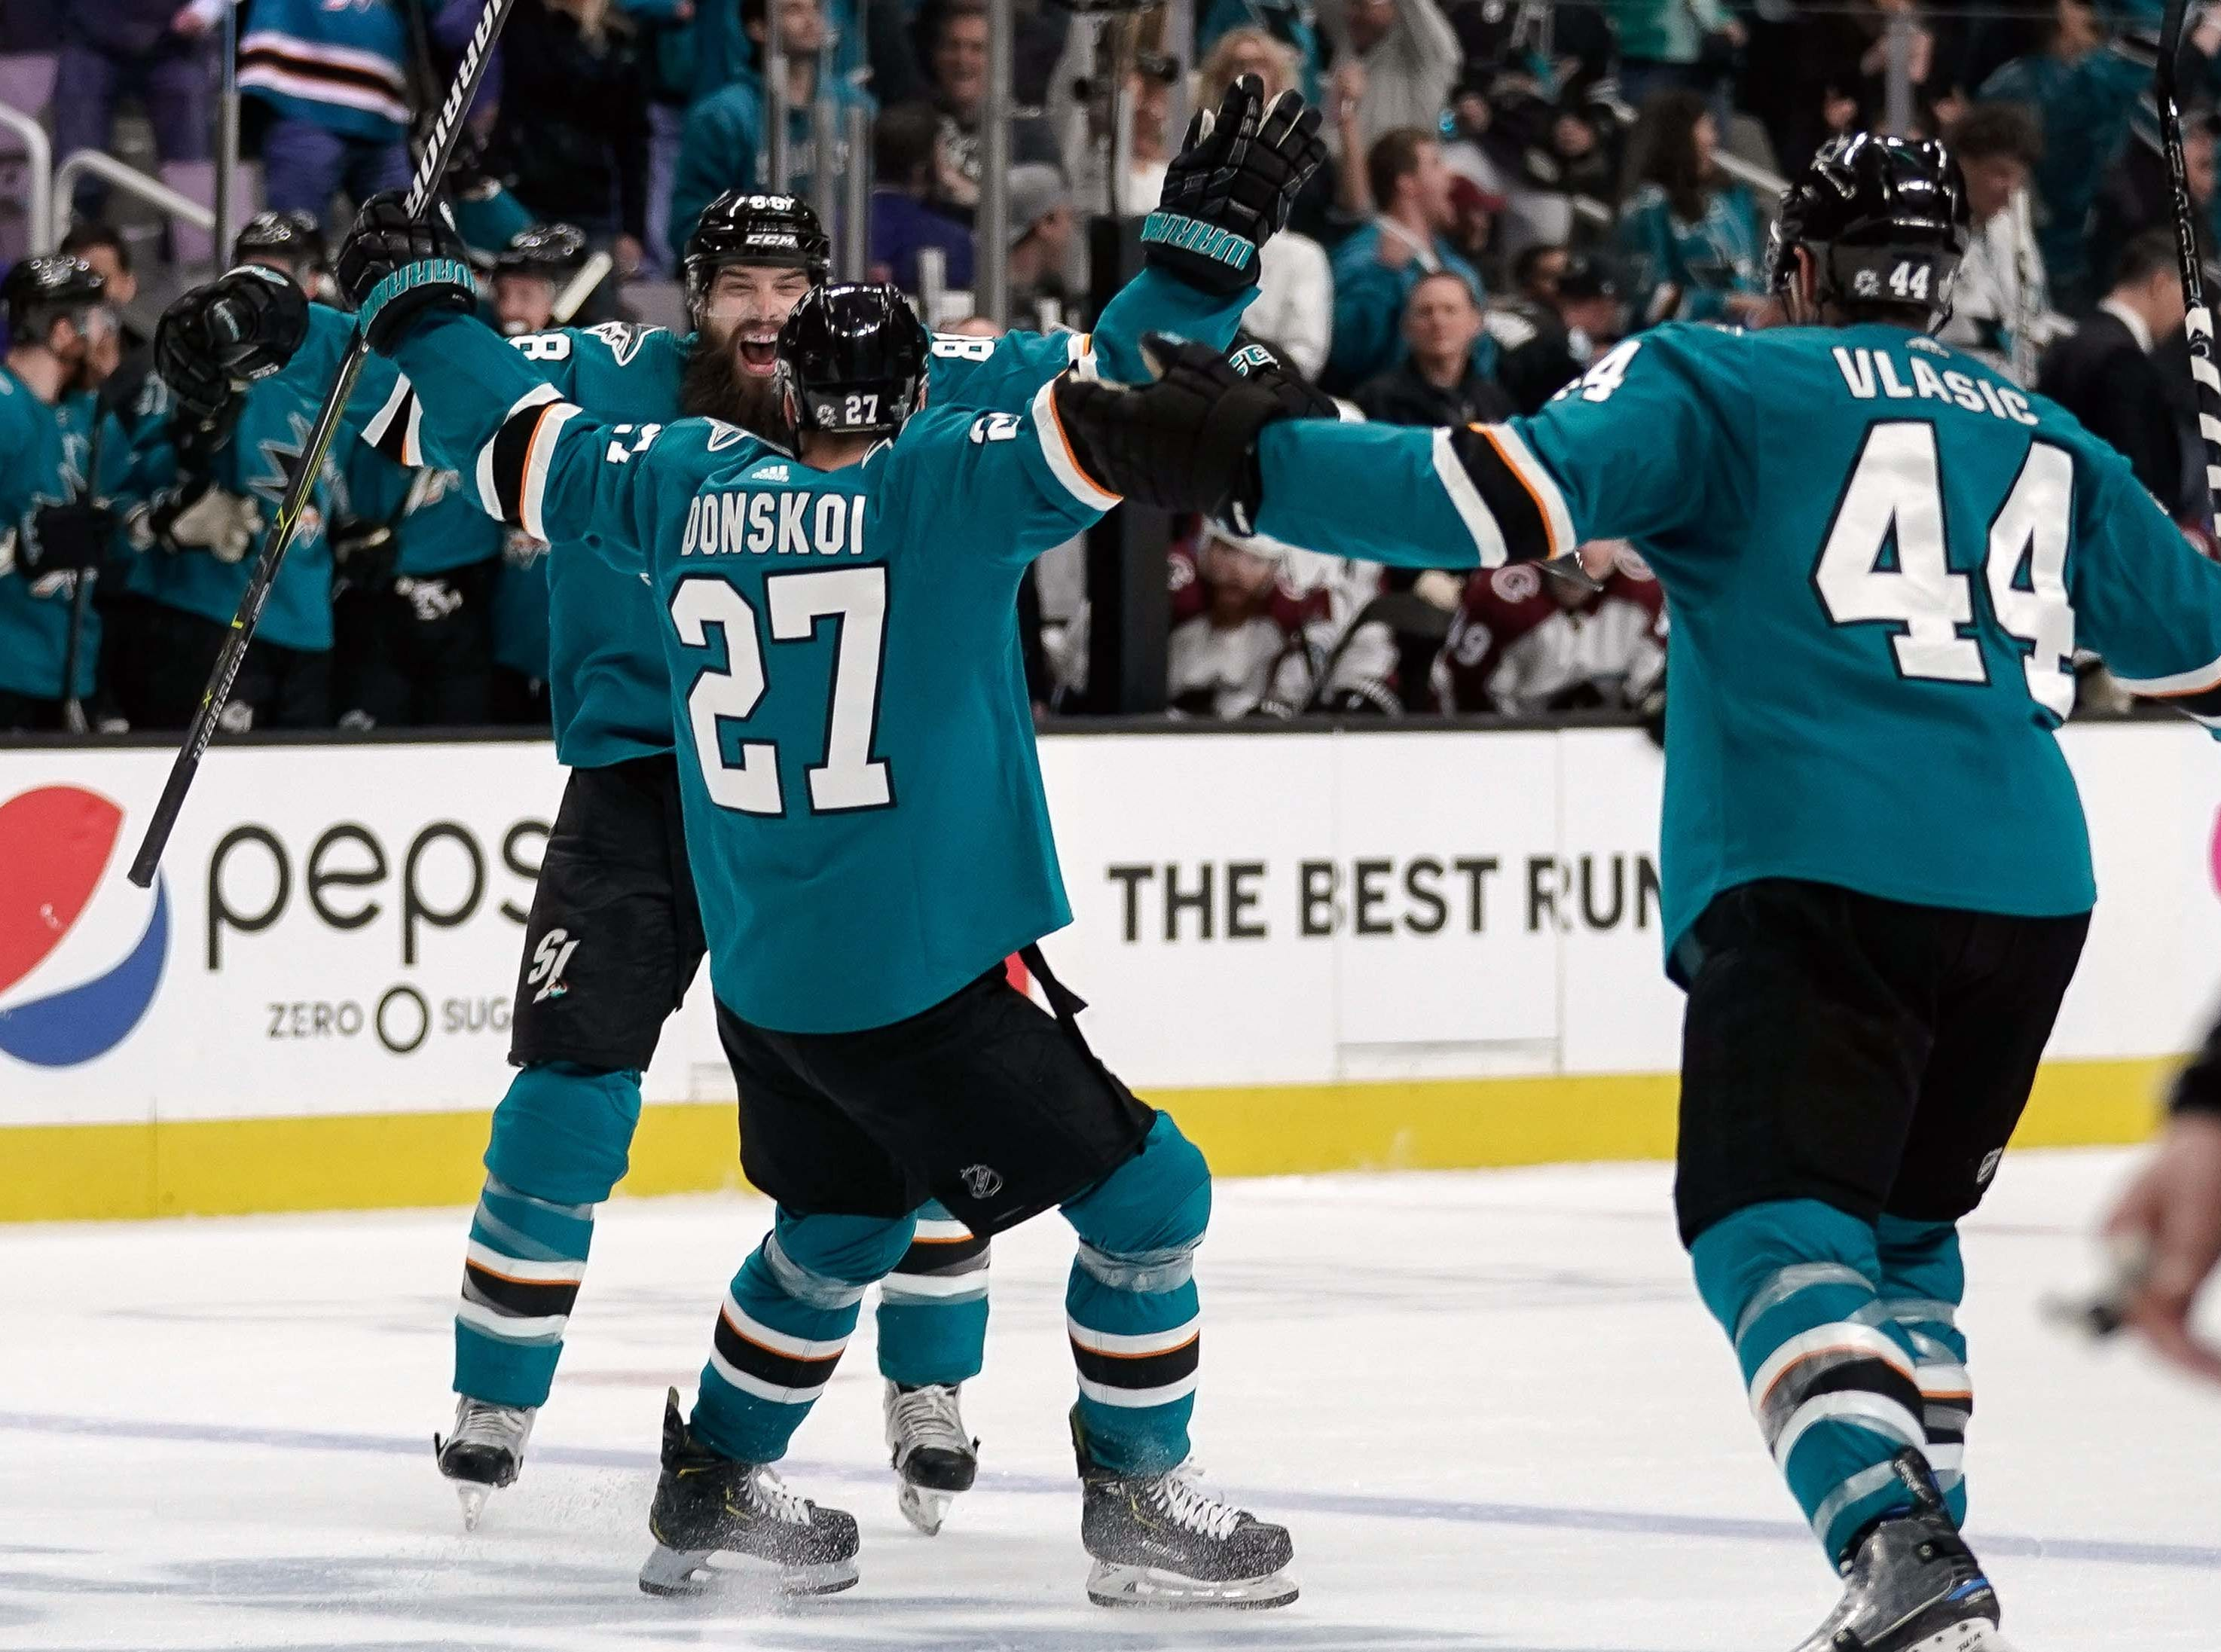 Second round: San Jose Sharks forward Joonas Donskoi celebrates with defensemen Brent Burns and Marc-Edouard Vlasic after scoring a goal in the second period in Game 7 against the Colorado Avalanche.